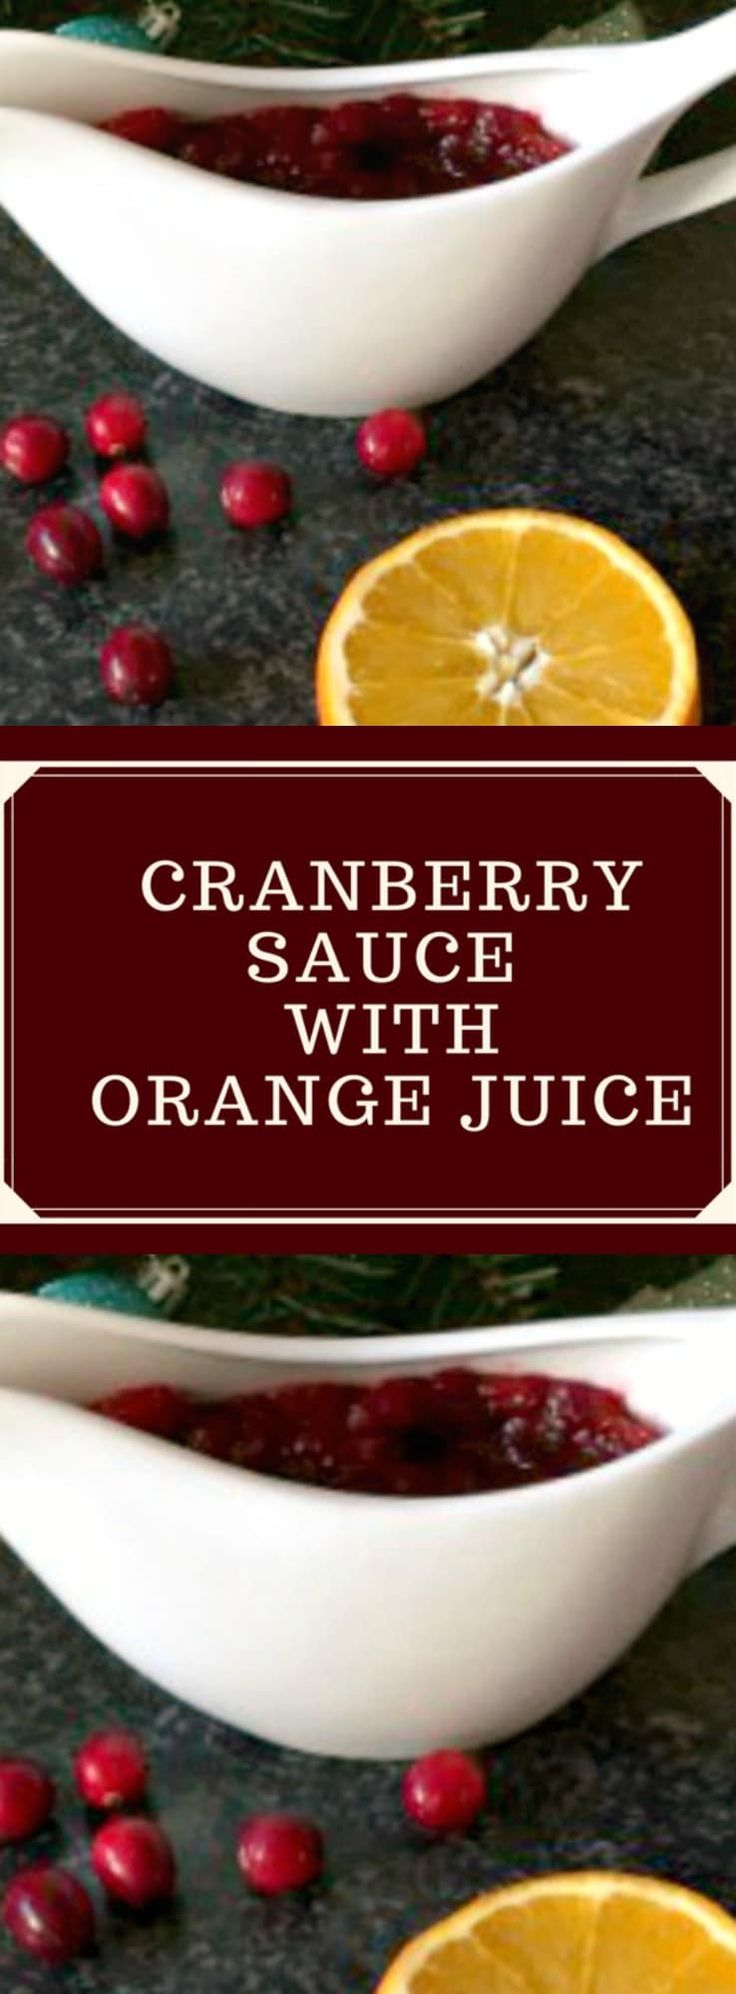 Homemade cranberry sauce with orange juice, the best sauce to serve with your Thanksgiving or Christmas turkey. Ready in just 10 minutes.